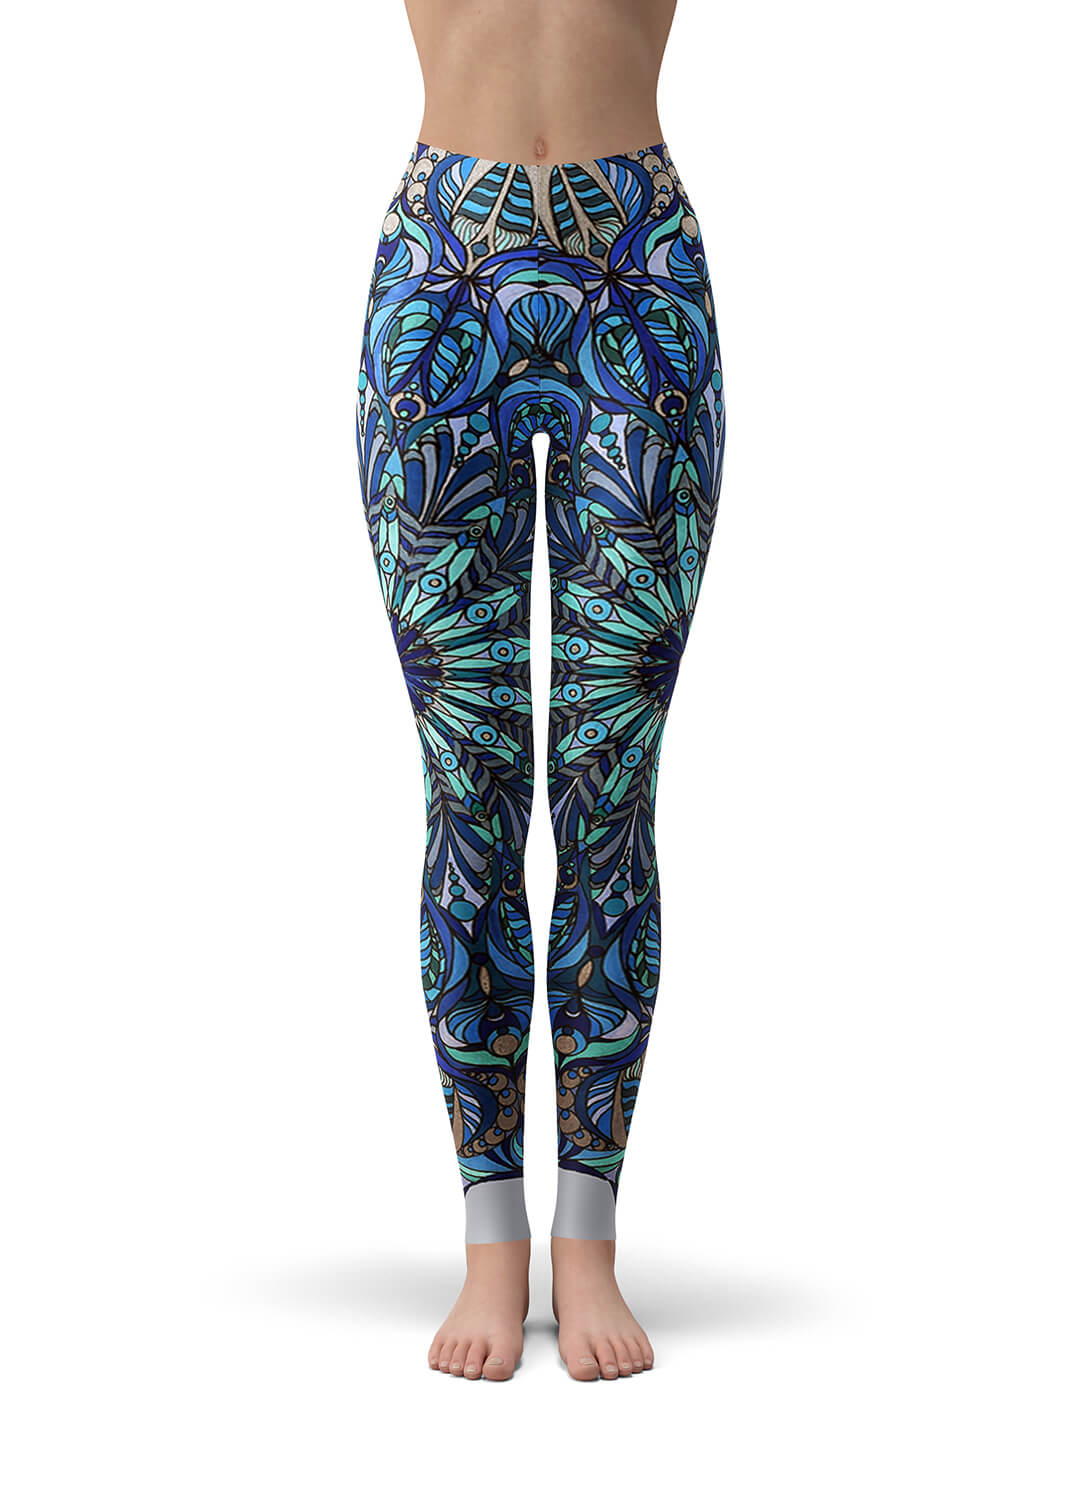 Blue and Silver Grey Mandala Leggings - The Seed of Life Mandala